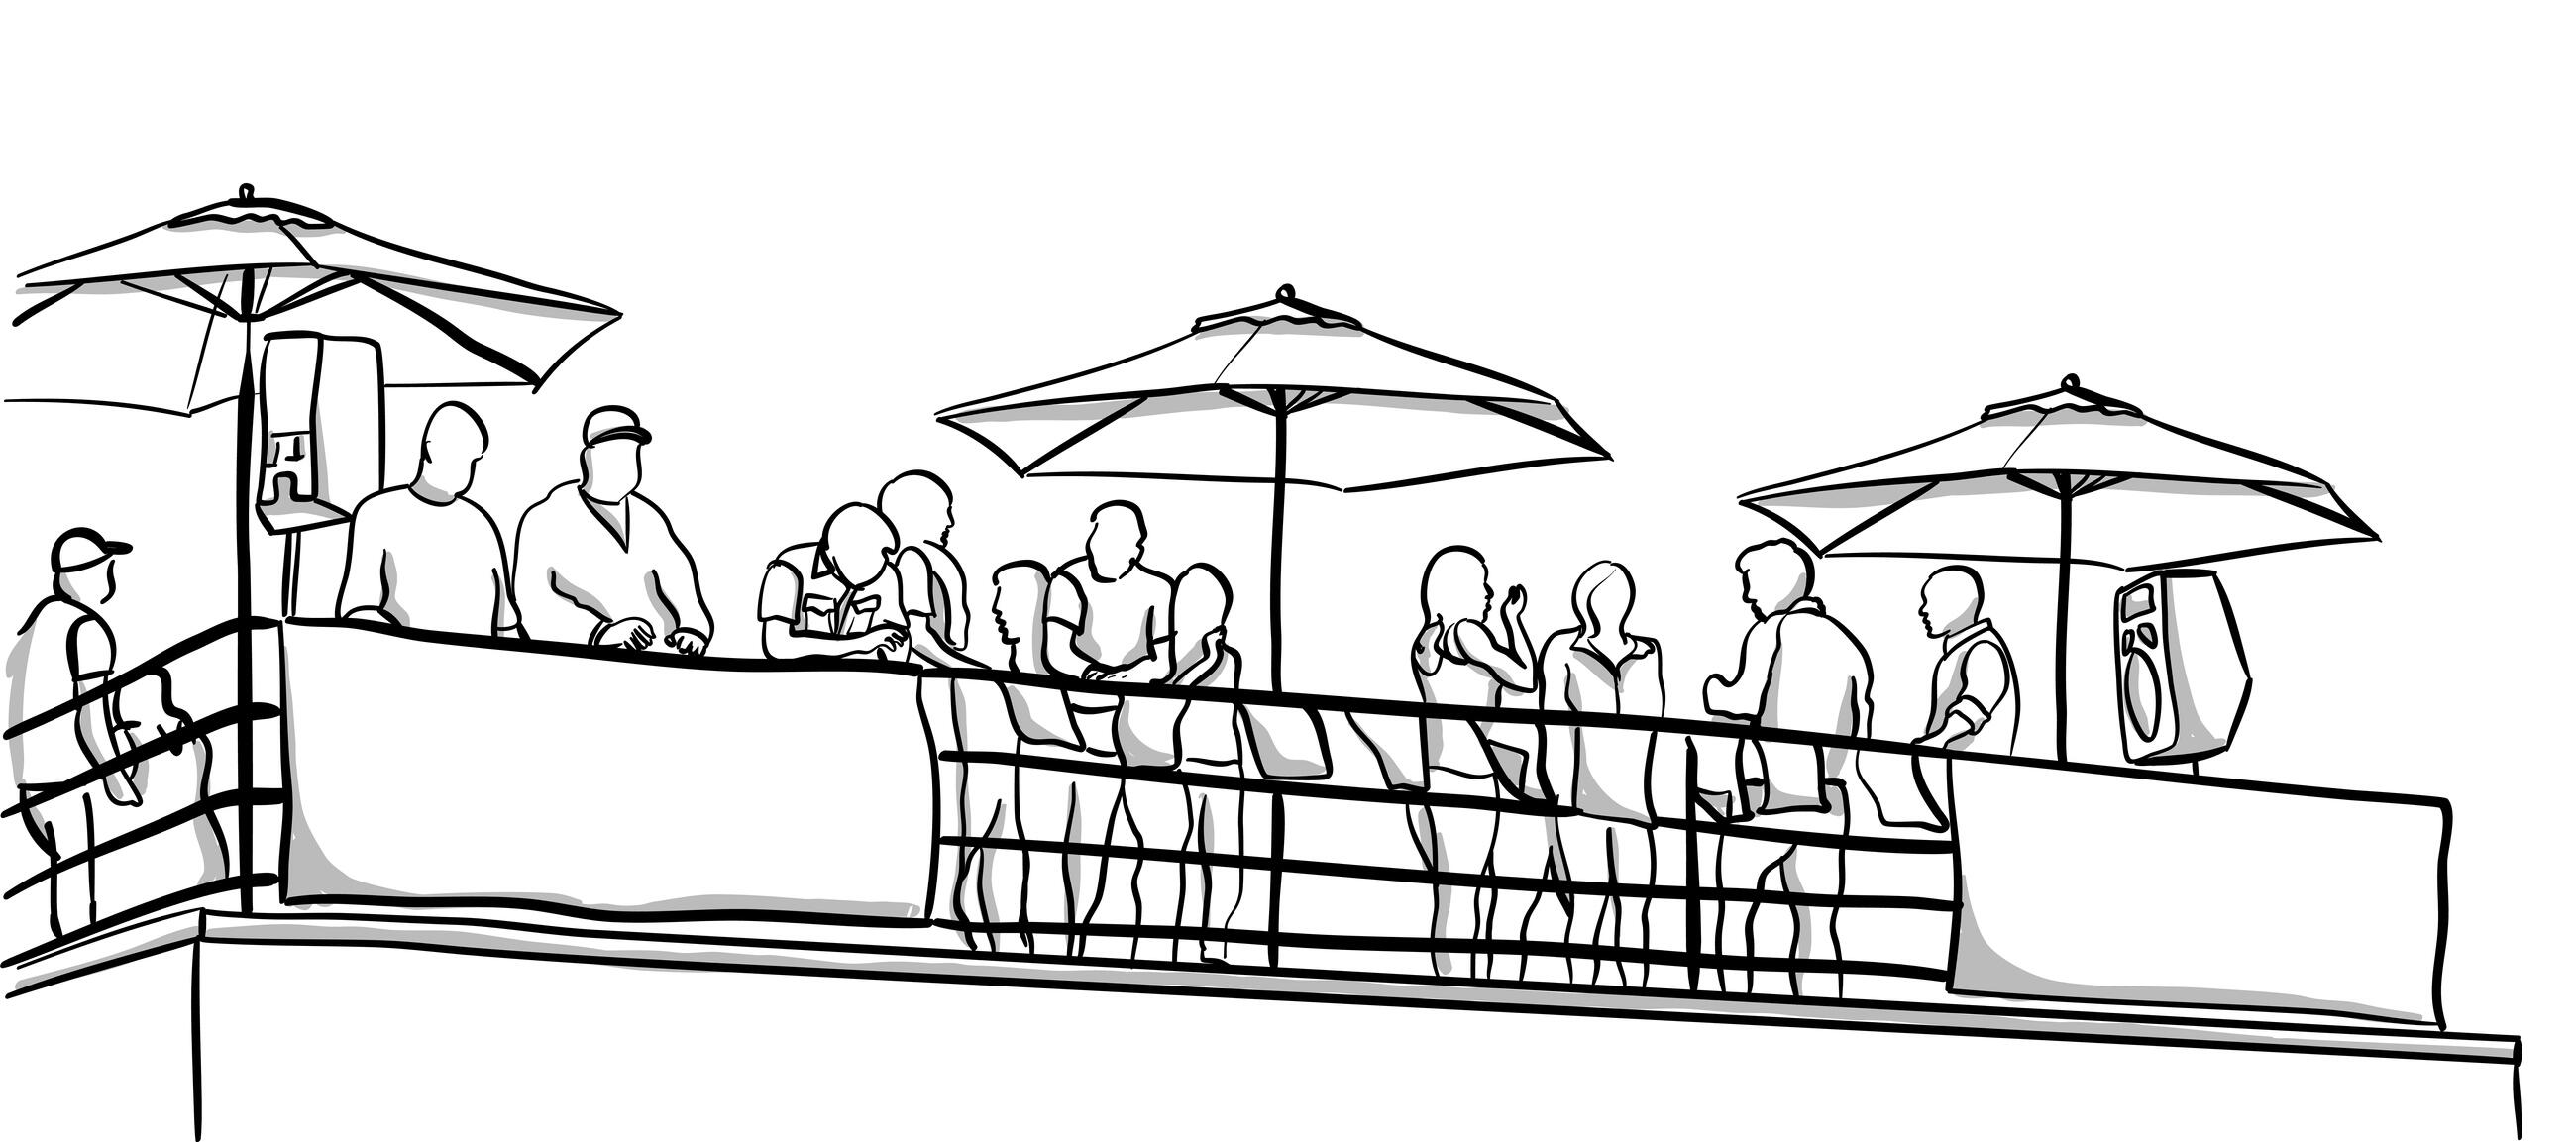 illustration of a crowd on a rooftop restaurant.